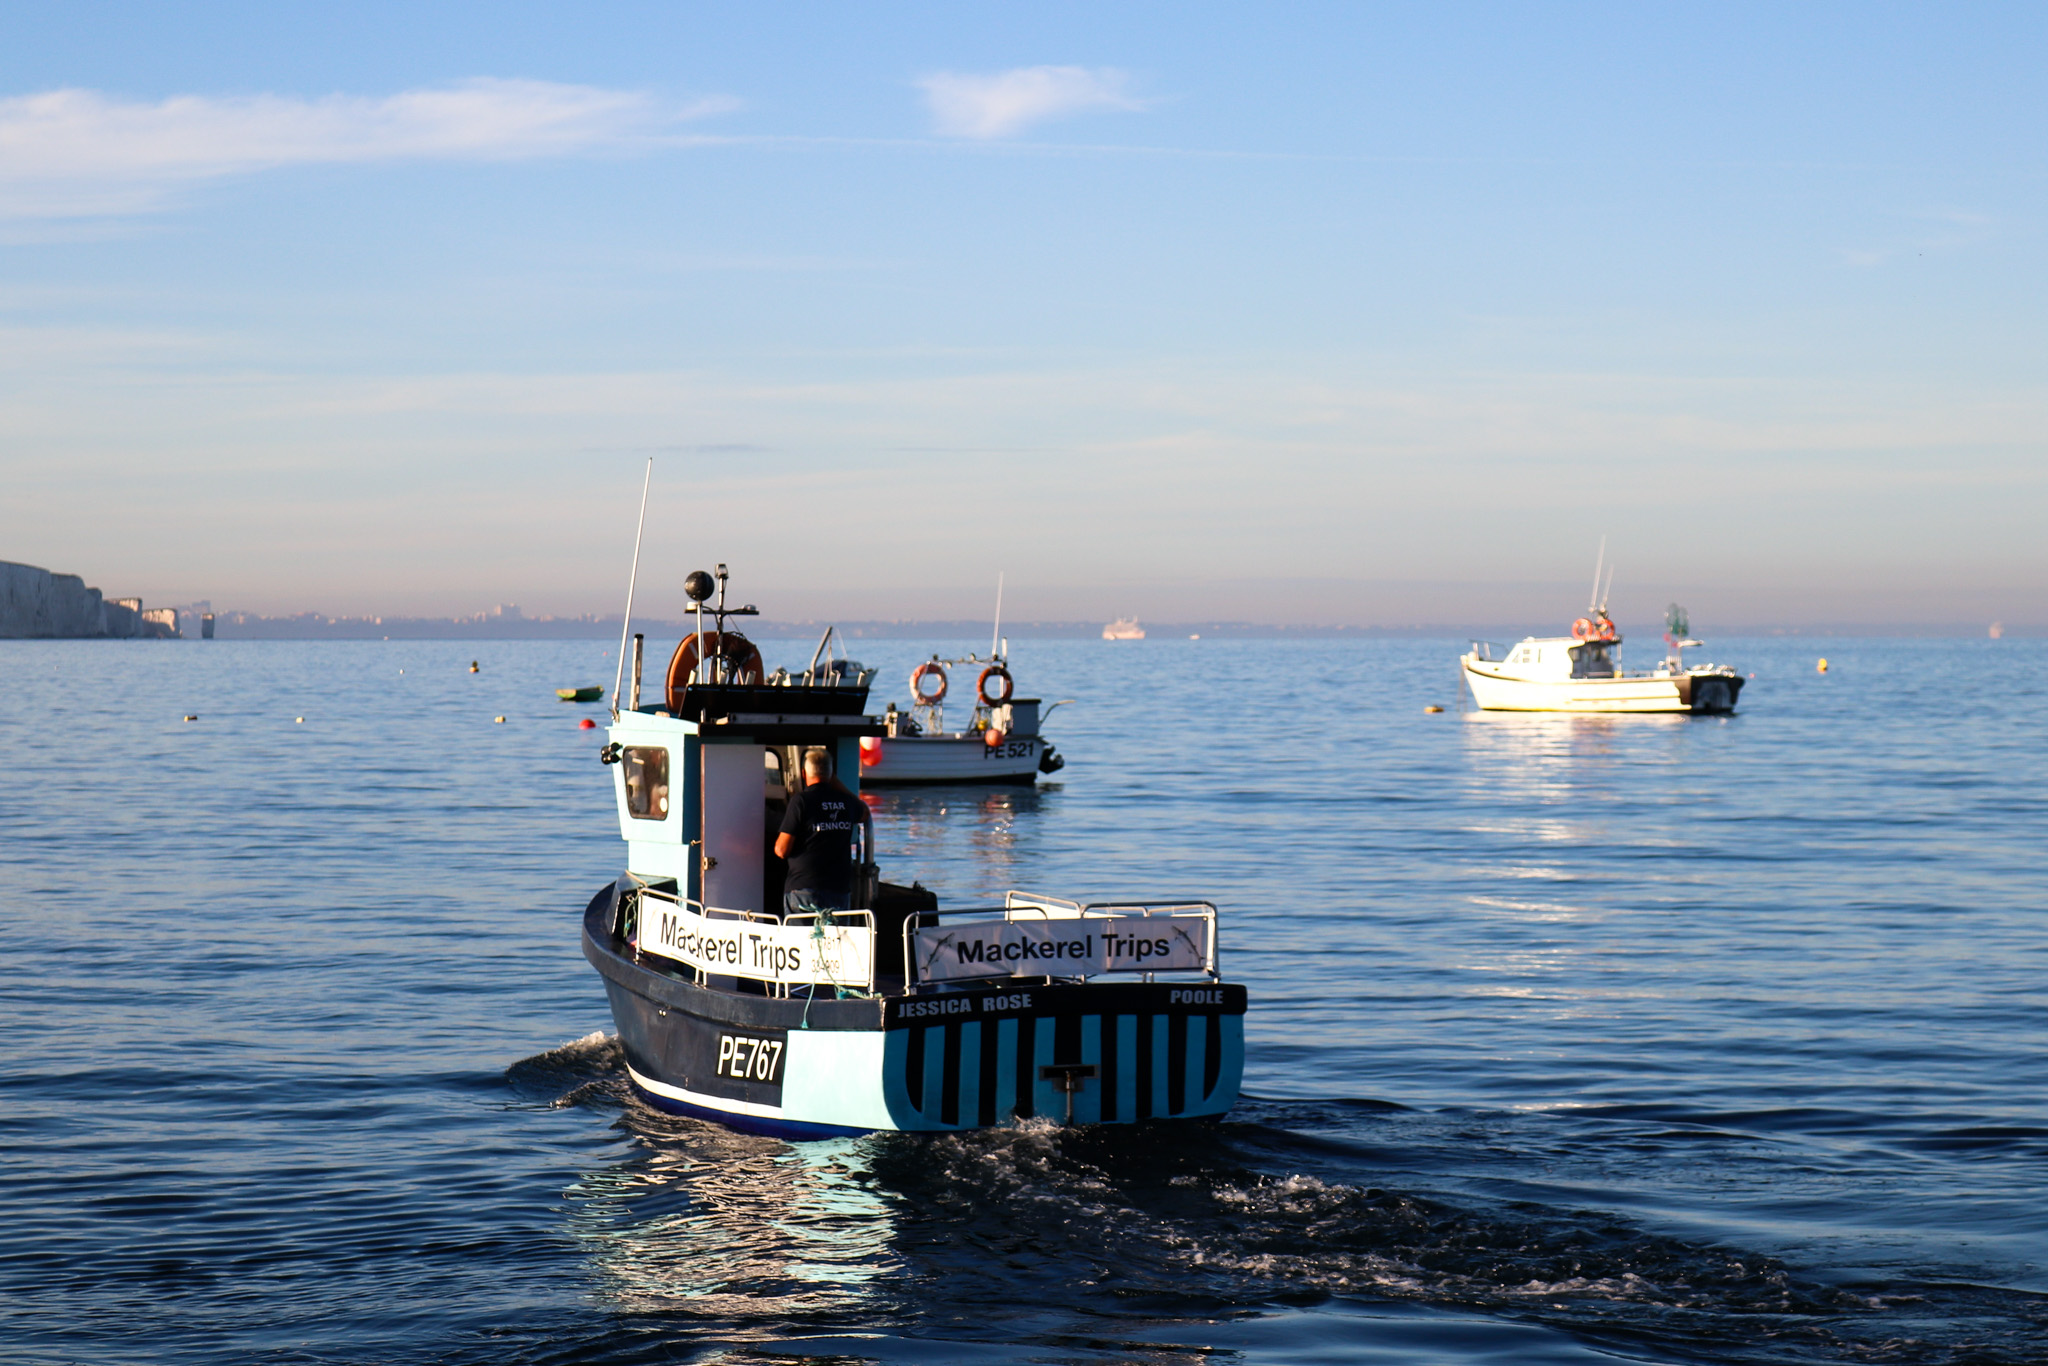 Mackerel boat going out at Swanage Bay